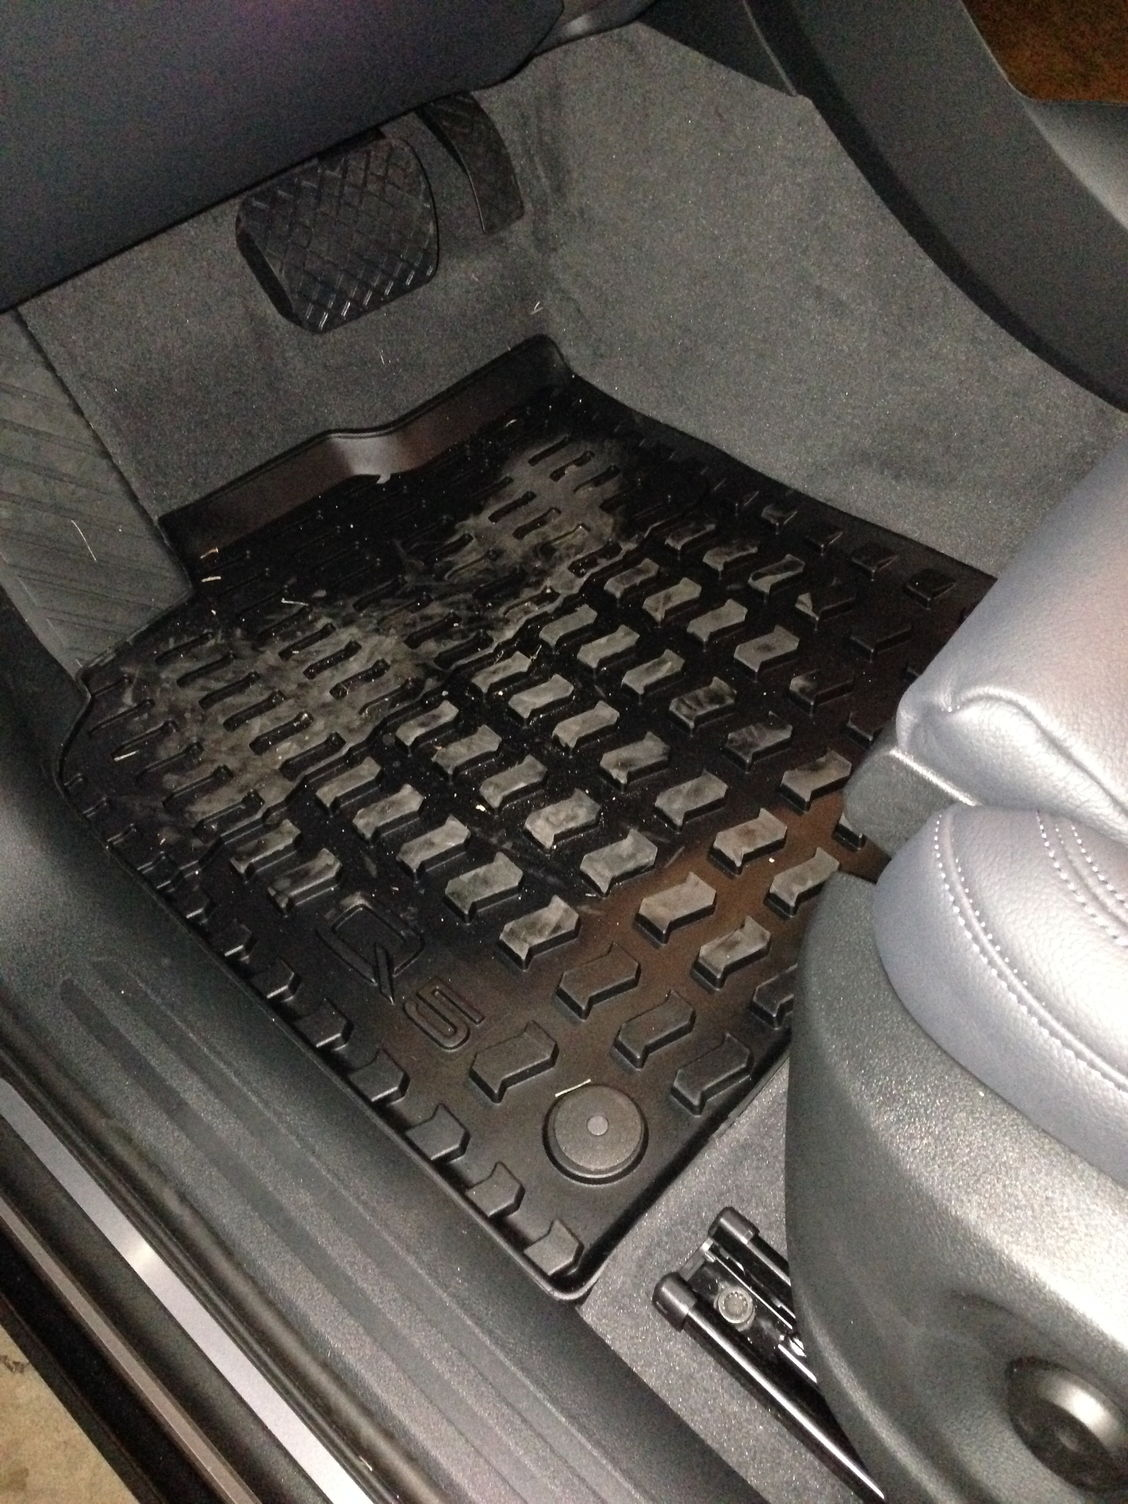 Weathertech floor mats audi q5 -  Audi Mats And Weathertech Mats Is Pretty Comparable After Seeing The Dirt On These Mats After Just A Week Or So I M Glad I Have Them And Can Wash Them